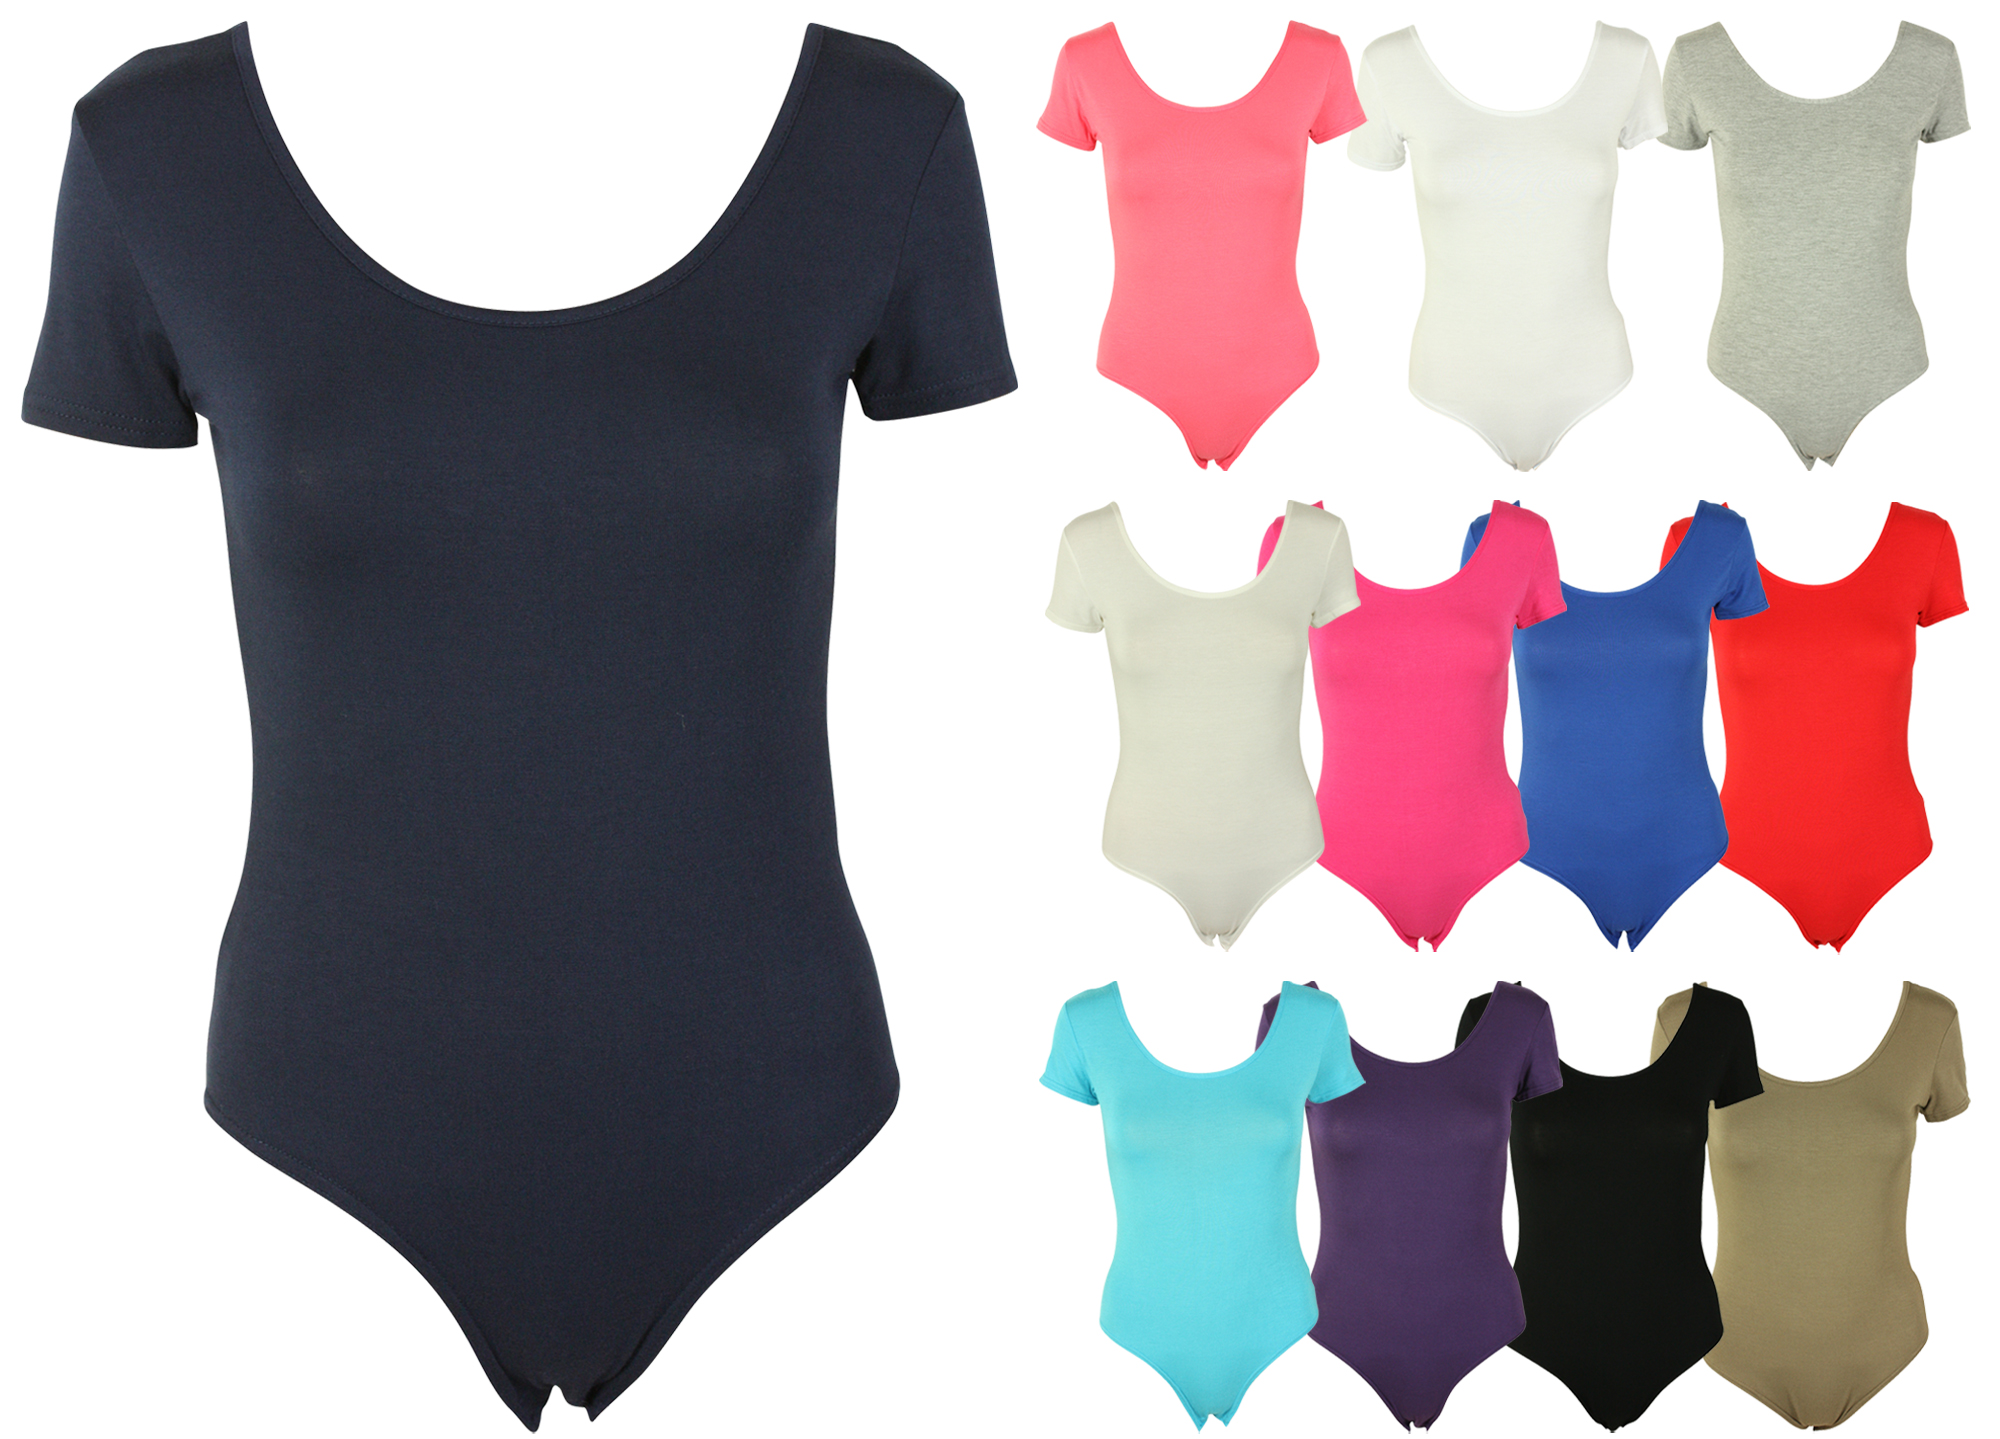 NEW LADIES STRETCH PLAIN BODYSUIT TOP WOMENS SHORT SLEEVE CASUAL LEOTARD 8 - 14